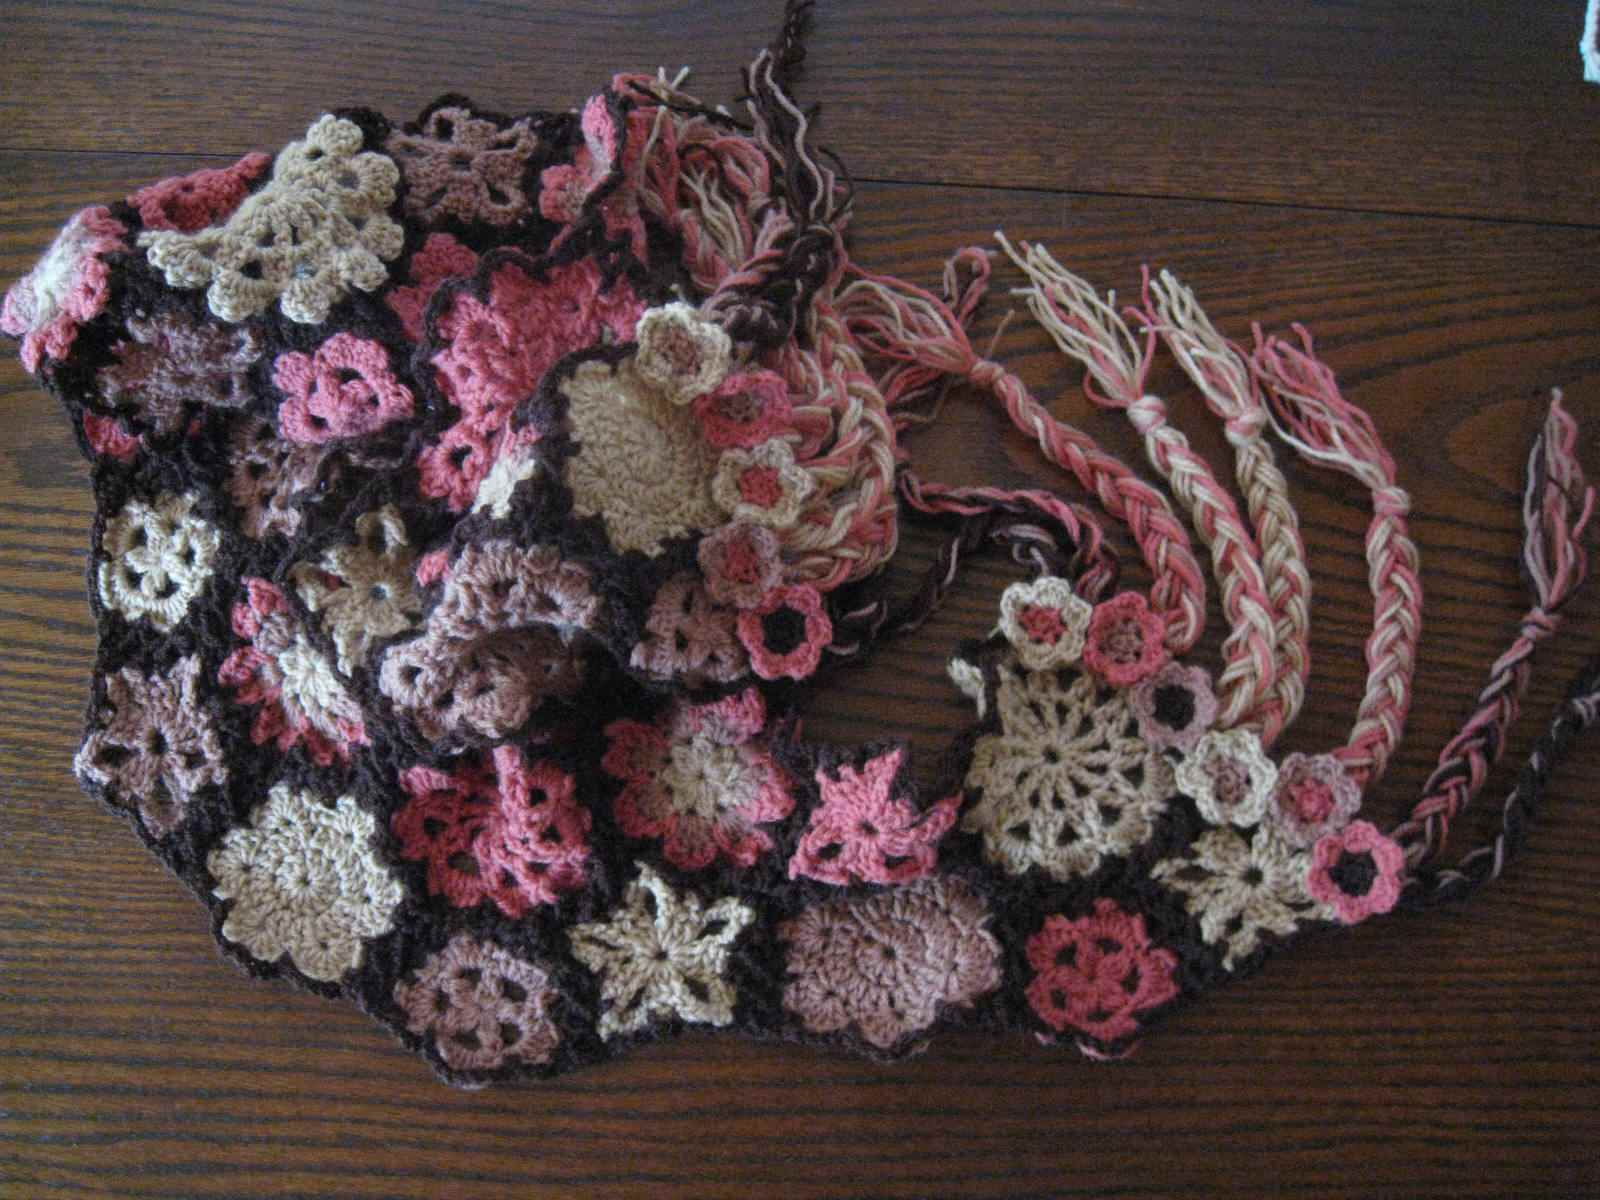 15 Fun Fabulous Free Fringed Crochet Patterns It With Flowers S Found A Few Braided Fringe Flower Scarf Pattern